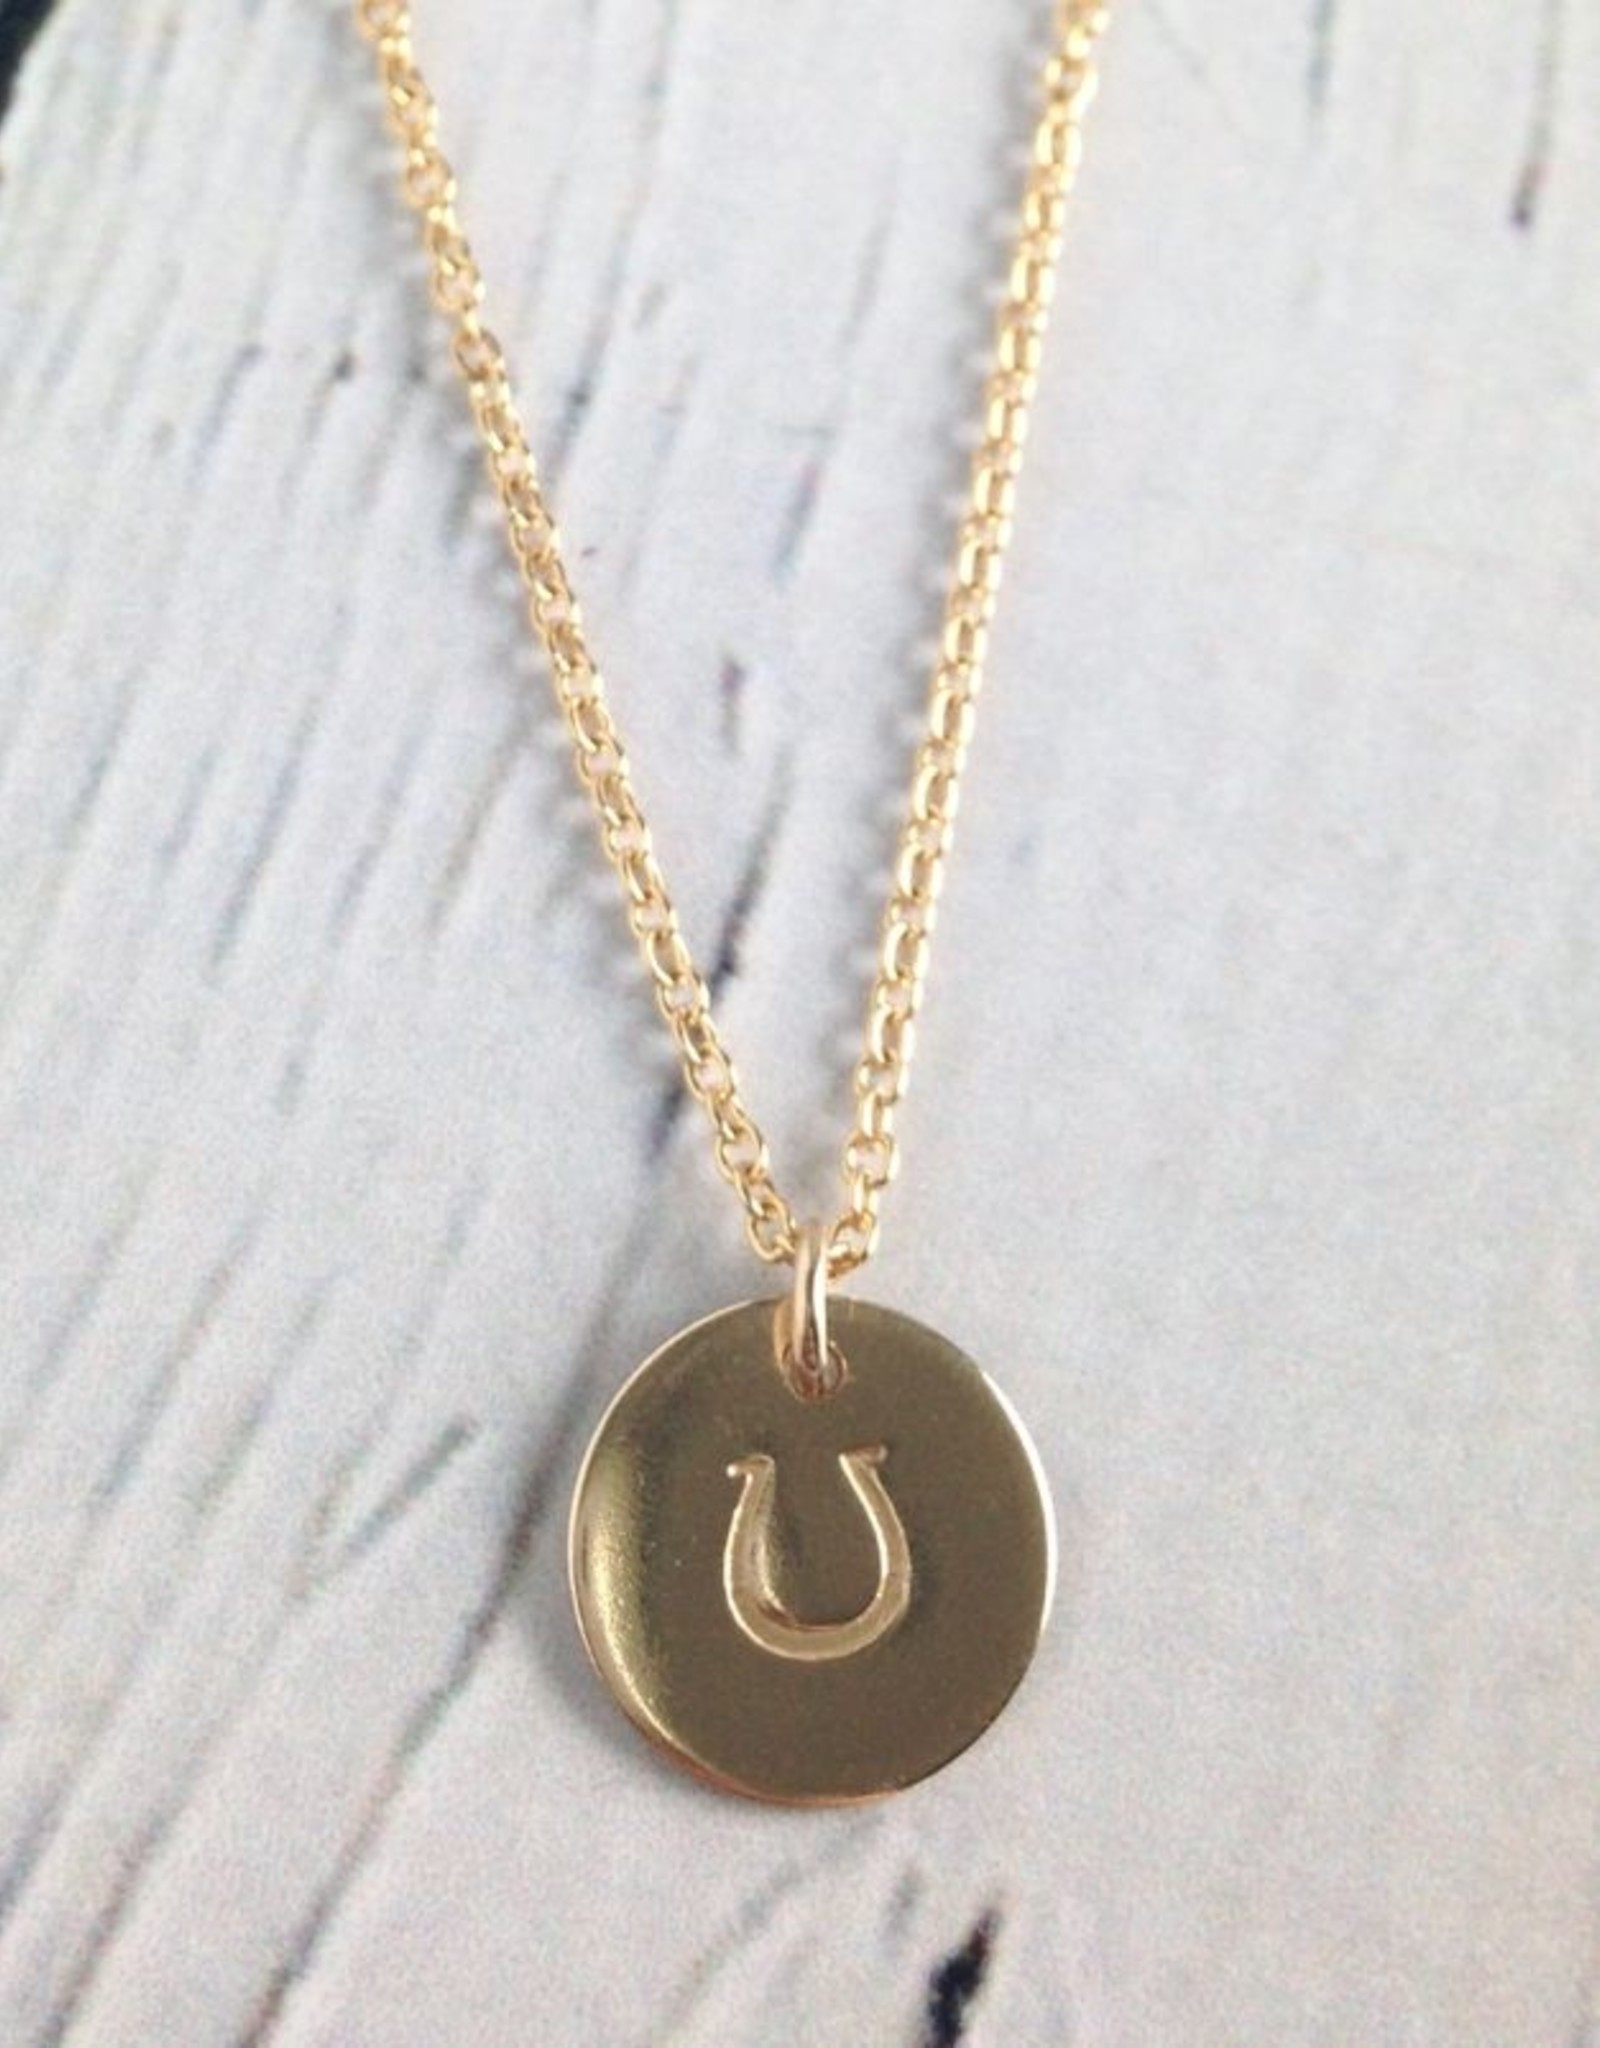 Handstamped Gold Filled Horseshoe